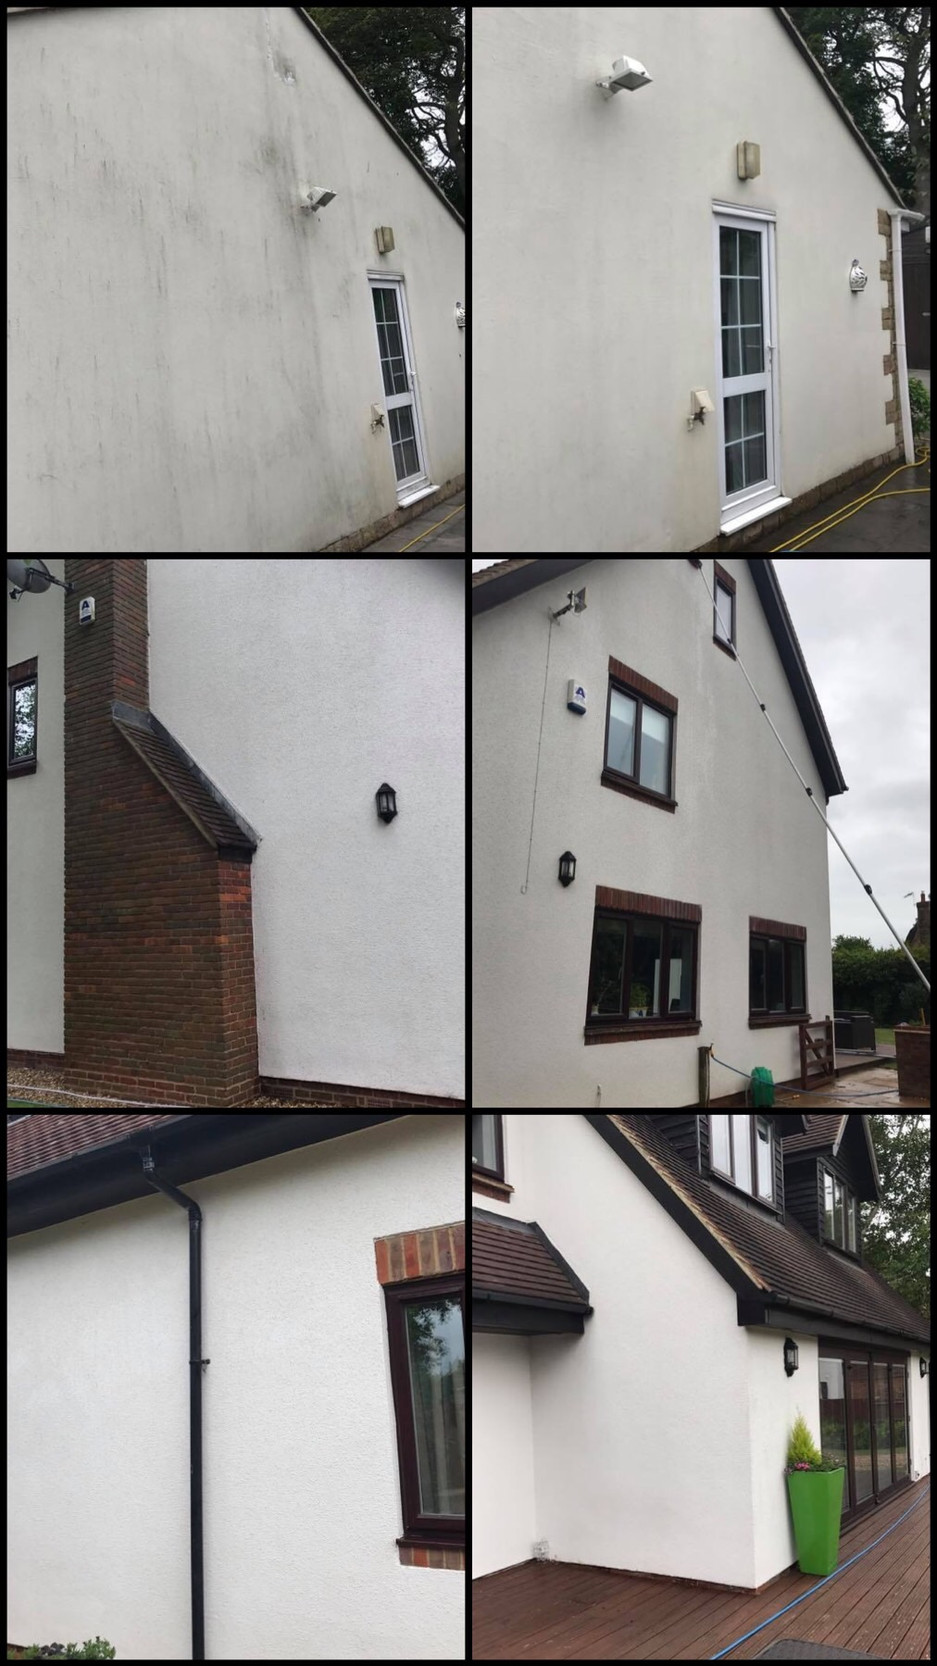 RENDER CLEANING IN BANBURY,RENDER CLEANING IN OXFORD,RENDER CLEANING IN BRACKLEY,RENDER CLEANING IN NORTHAMPTON